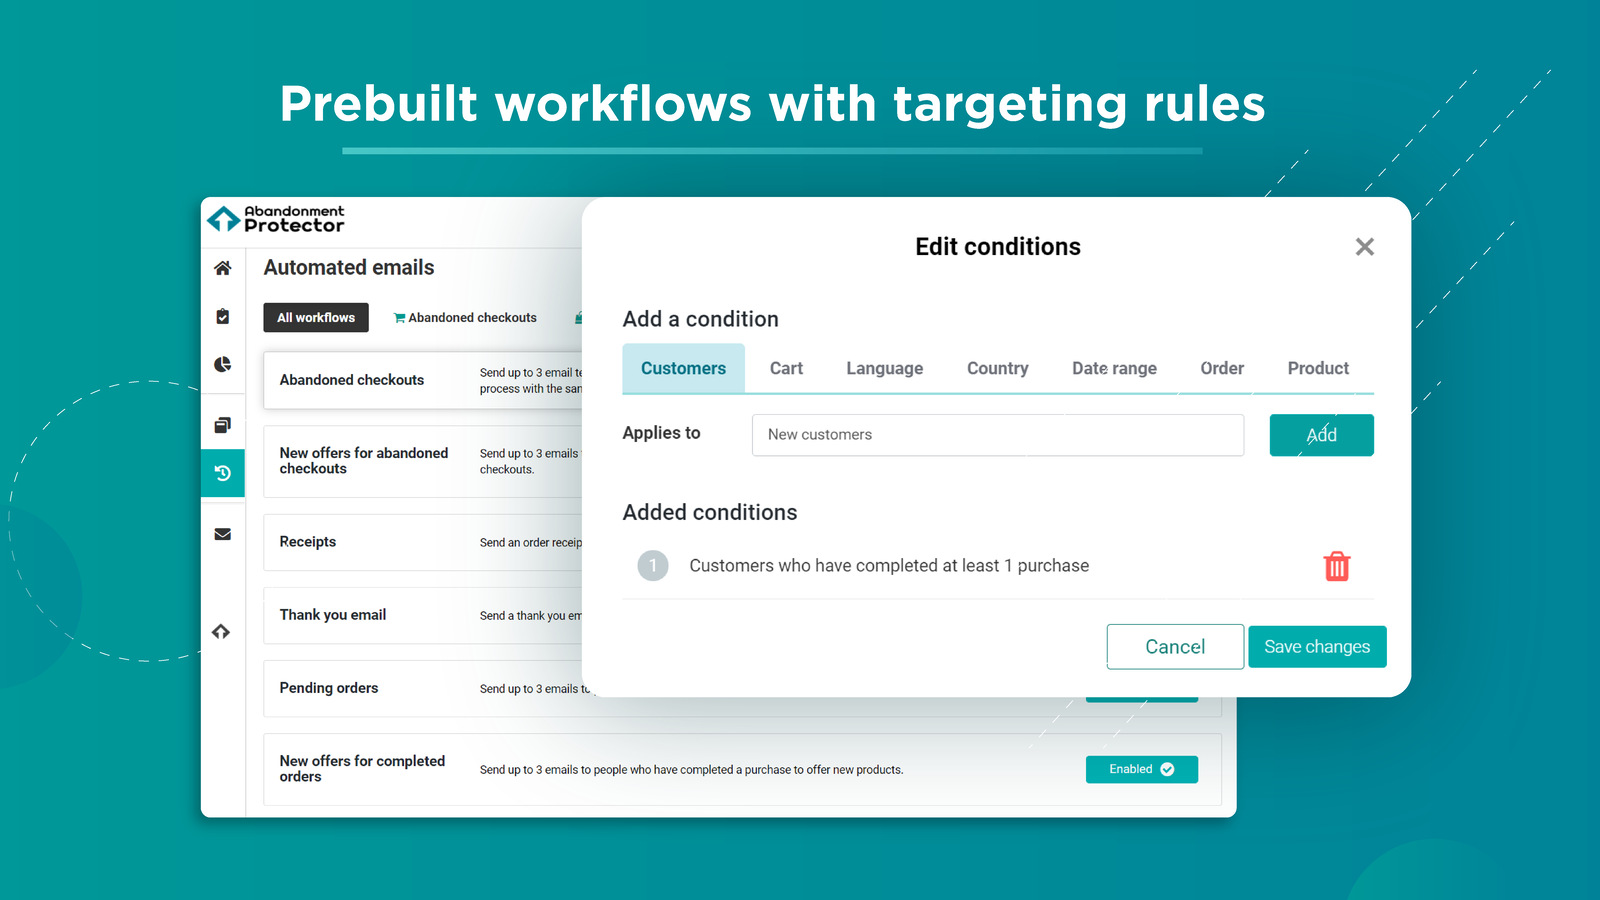 Workflows with targeting rules to create email marketing